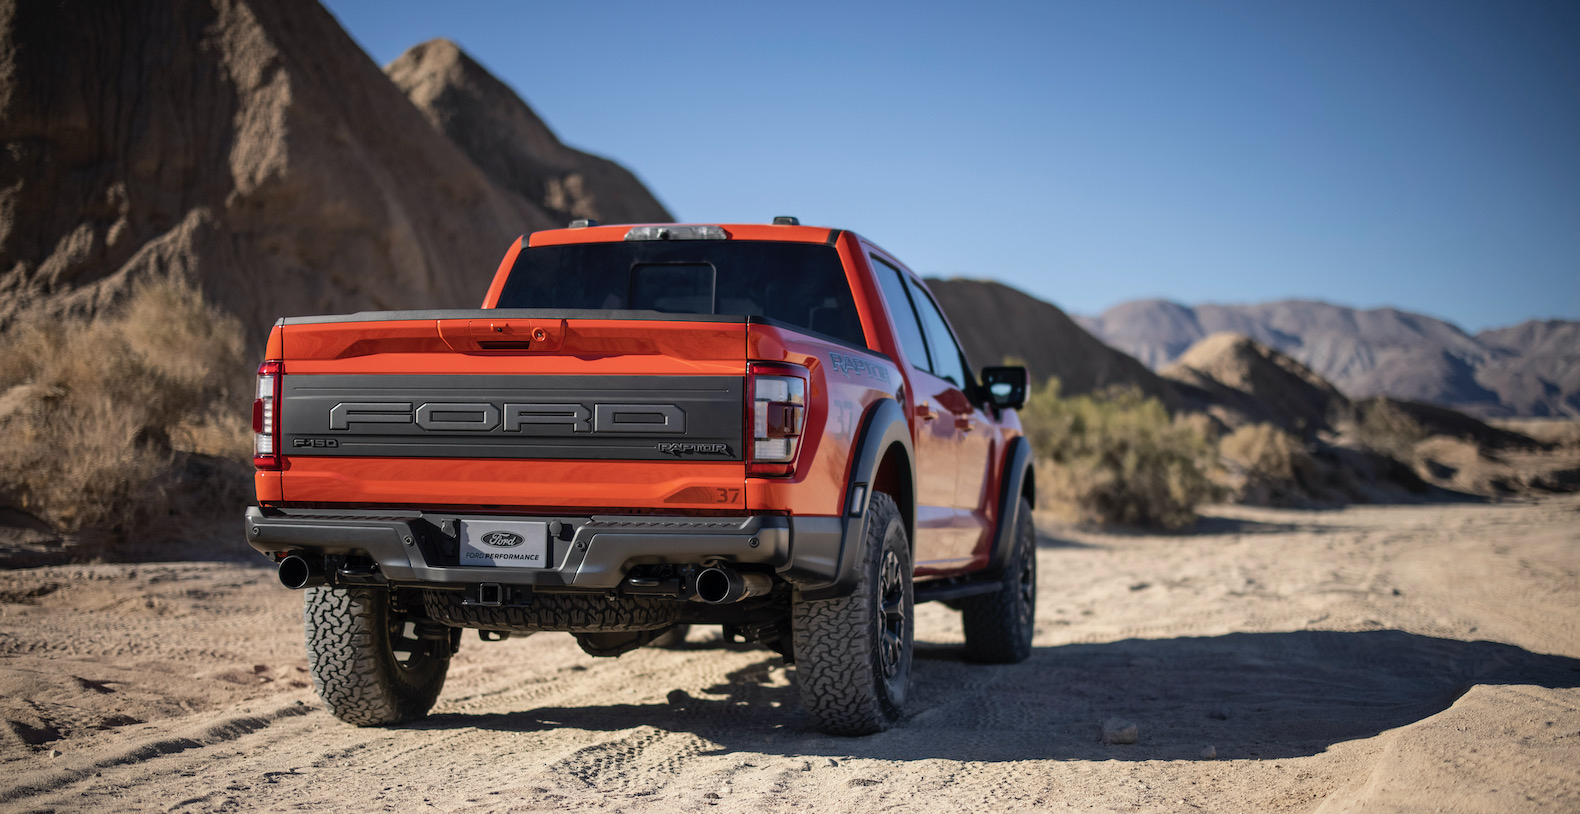 2022 Ford F150 Svt Raptor Price and Review